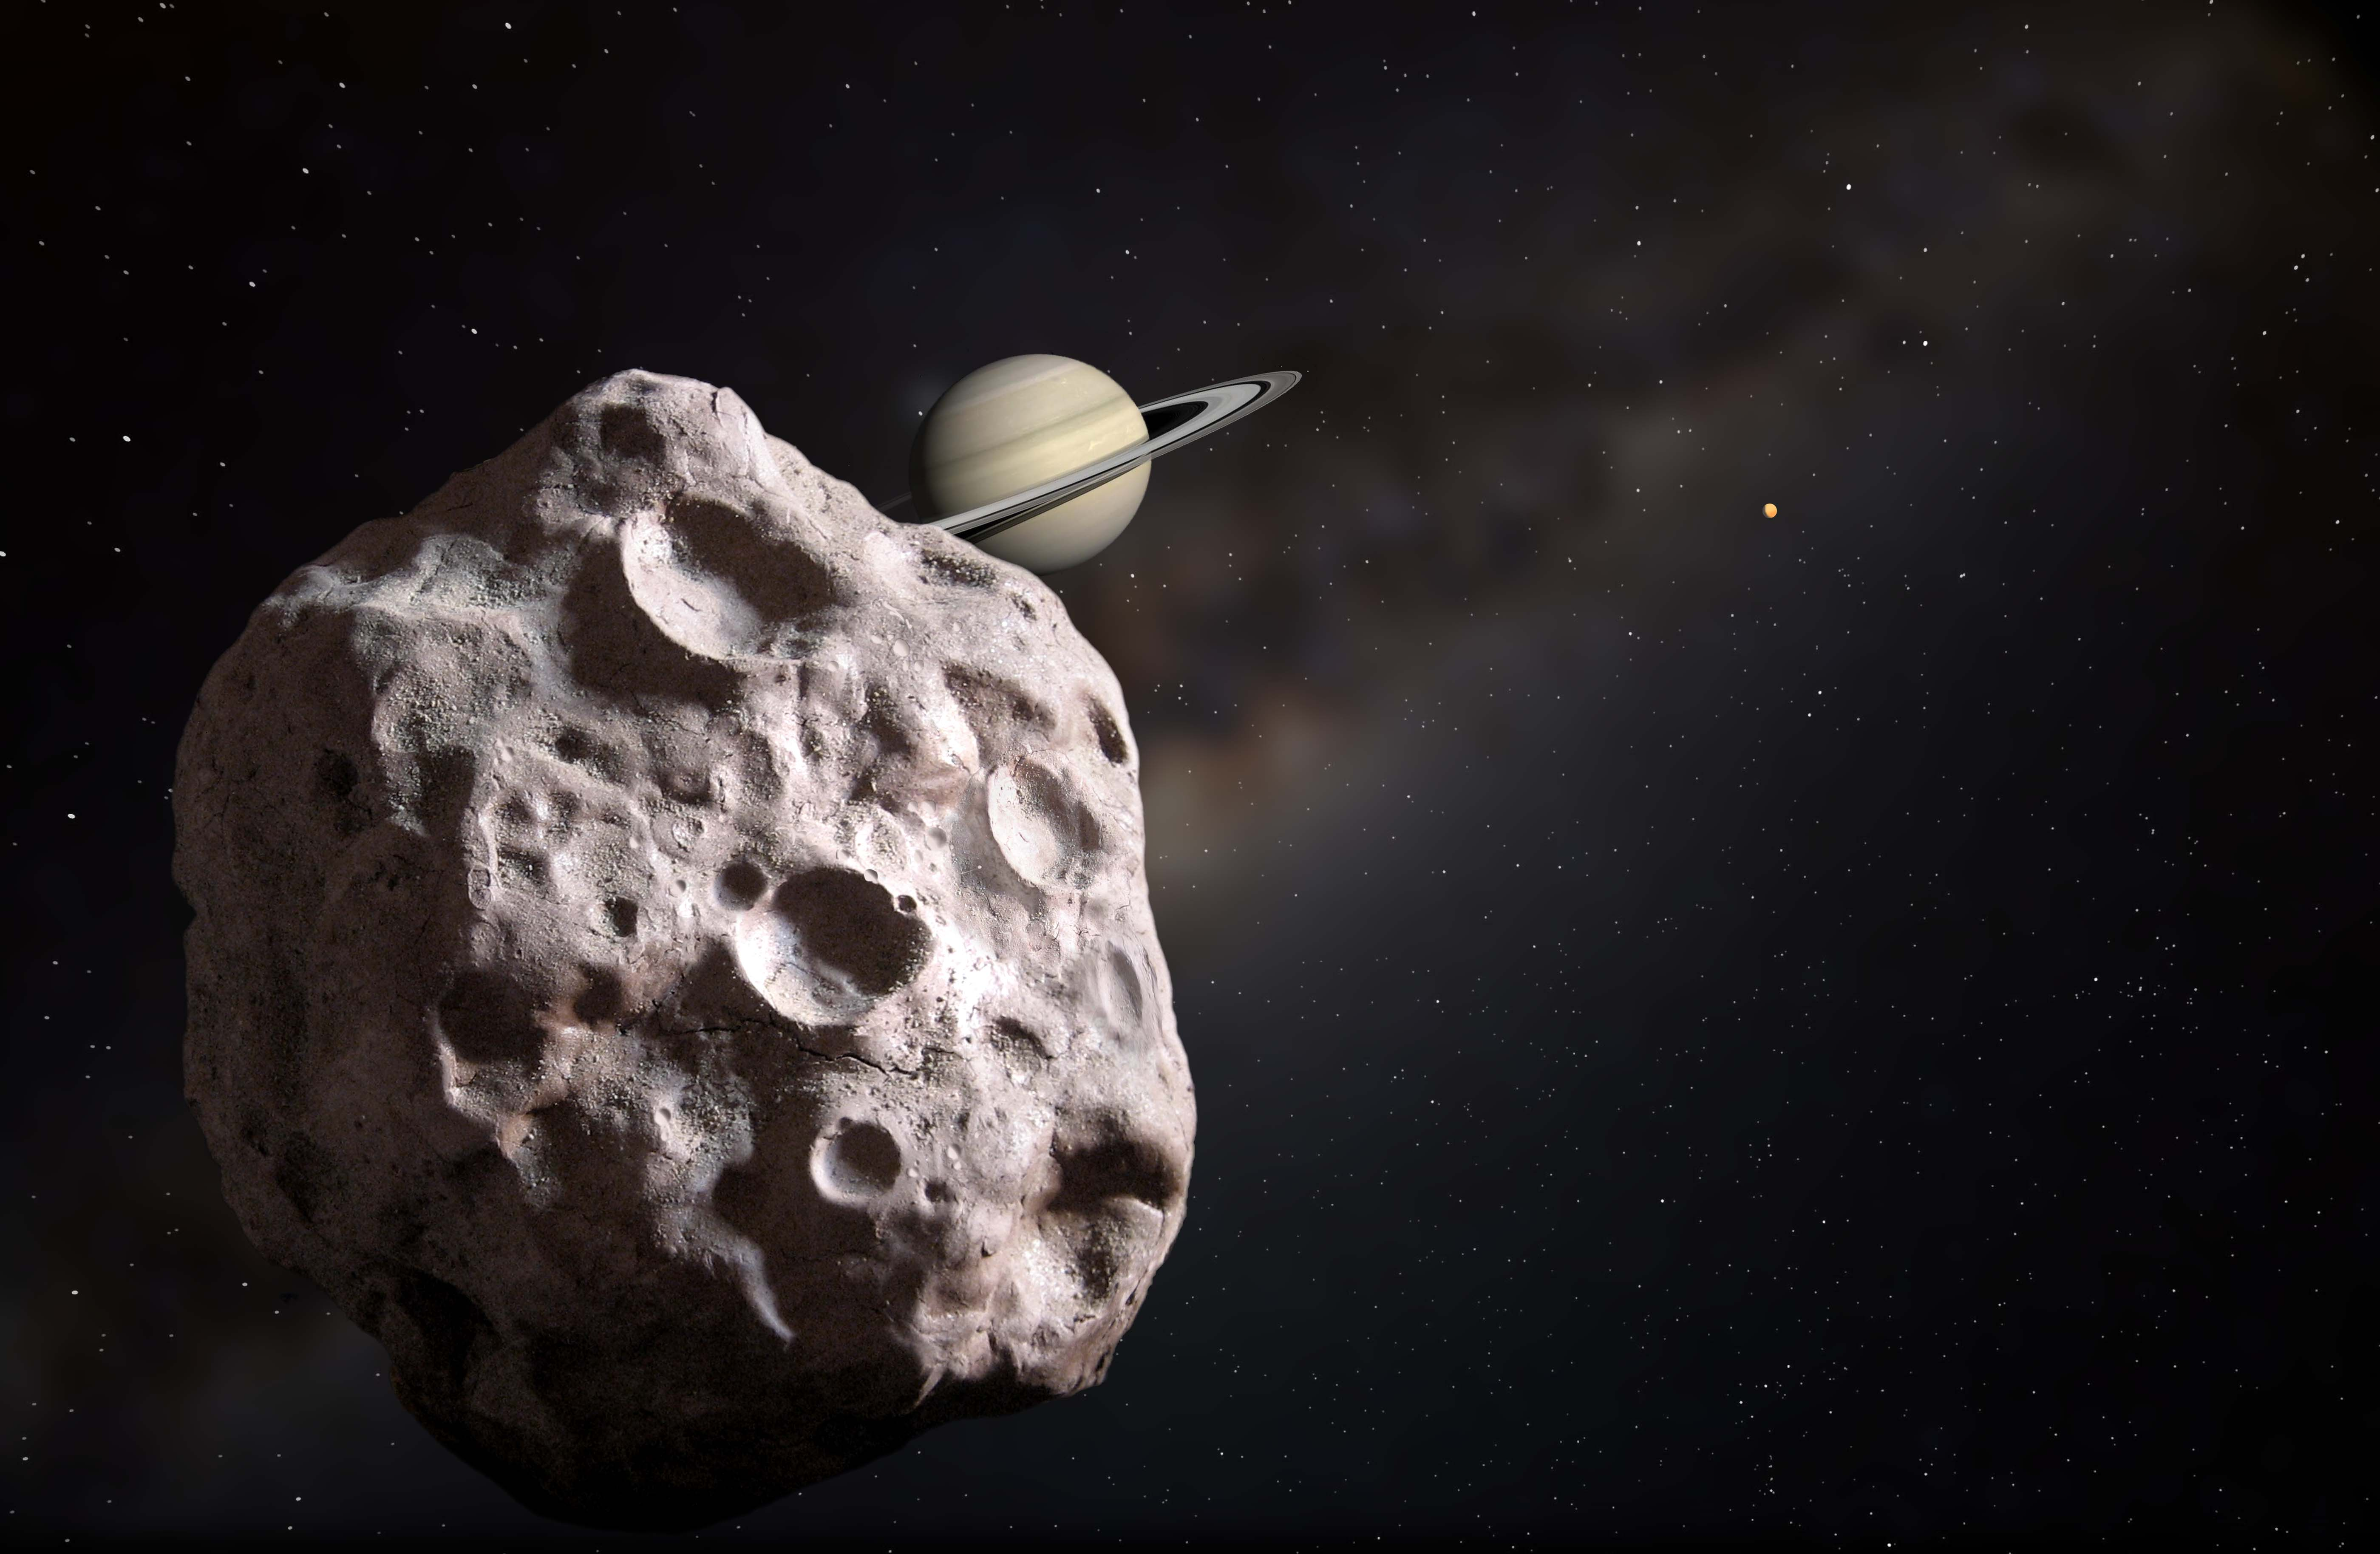 giant planets and their moons - photo #26